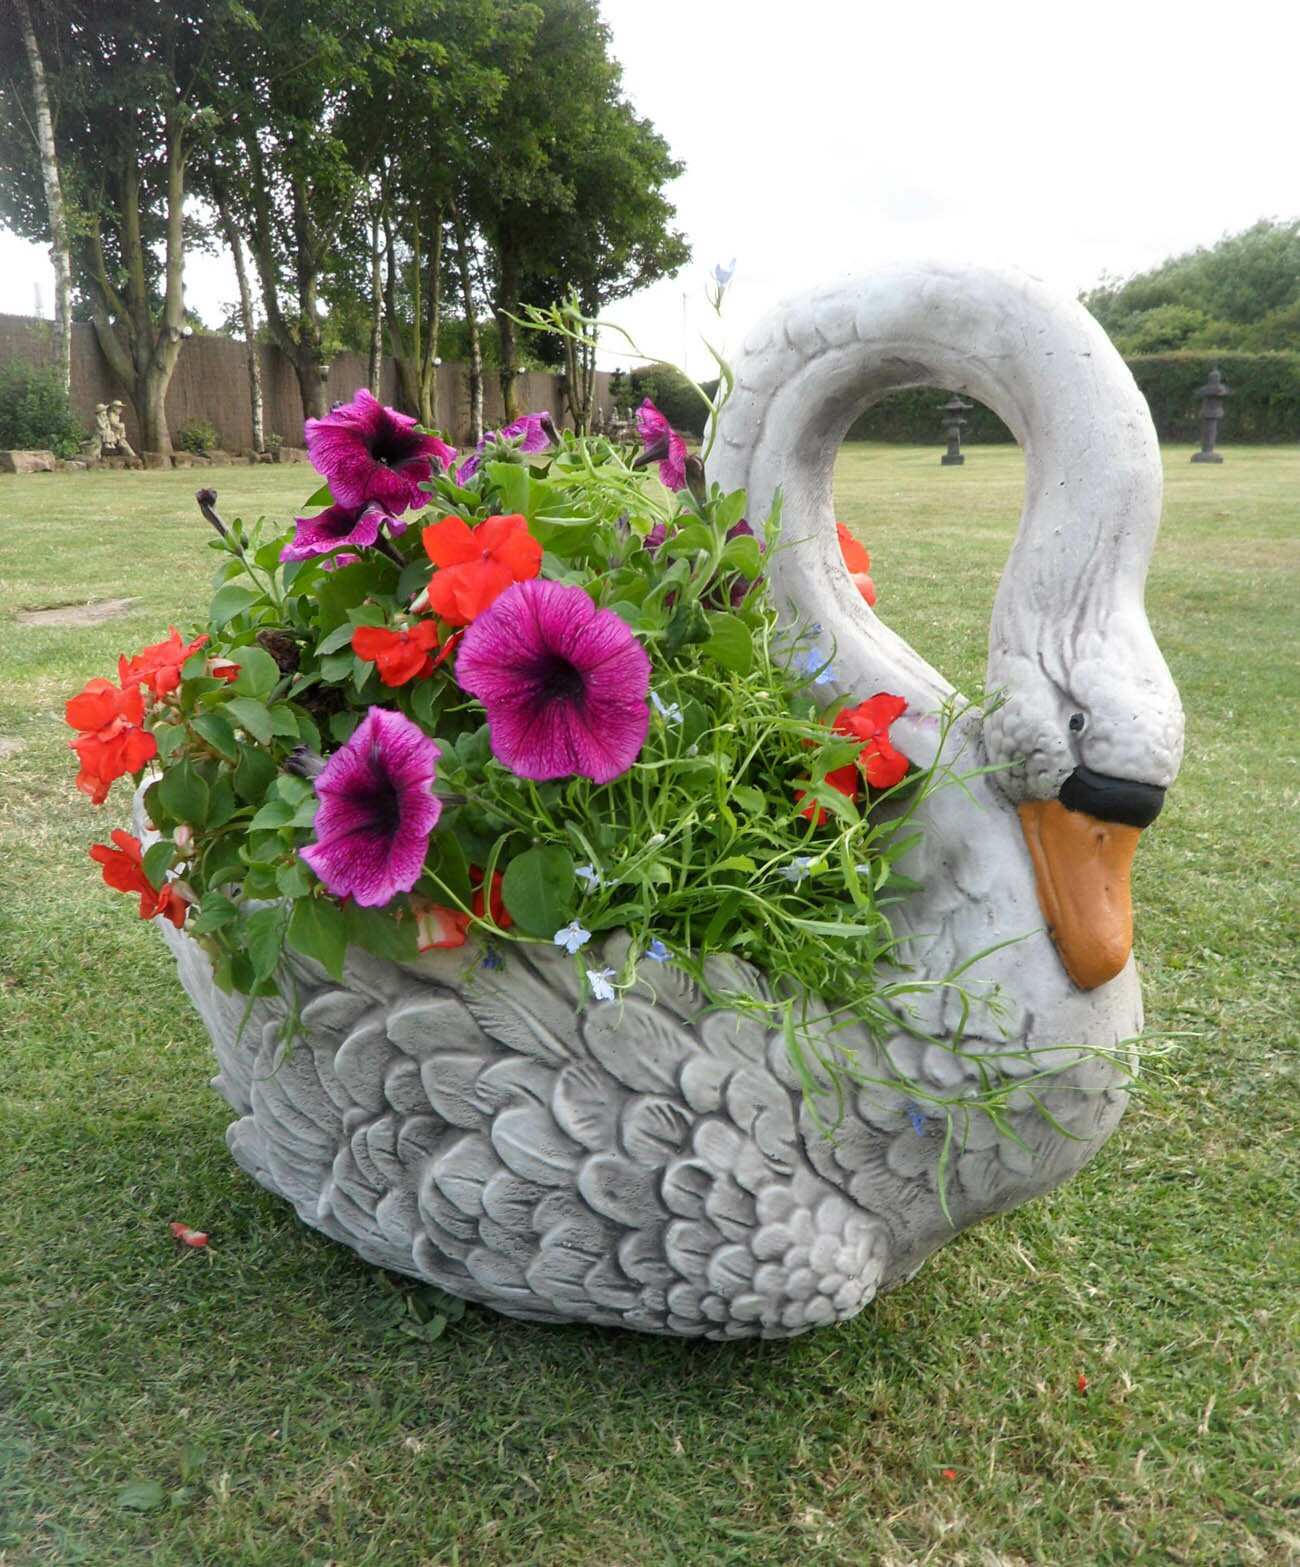 18 Decorative Garden Ornament Examples | MostBeautifulThings